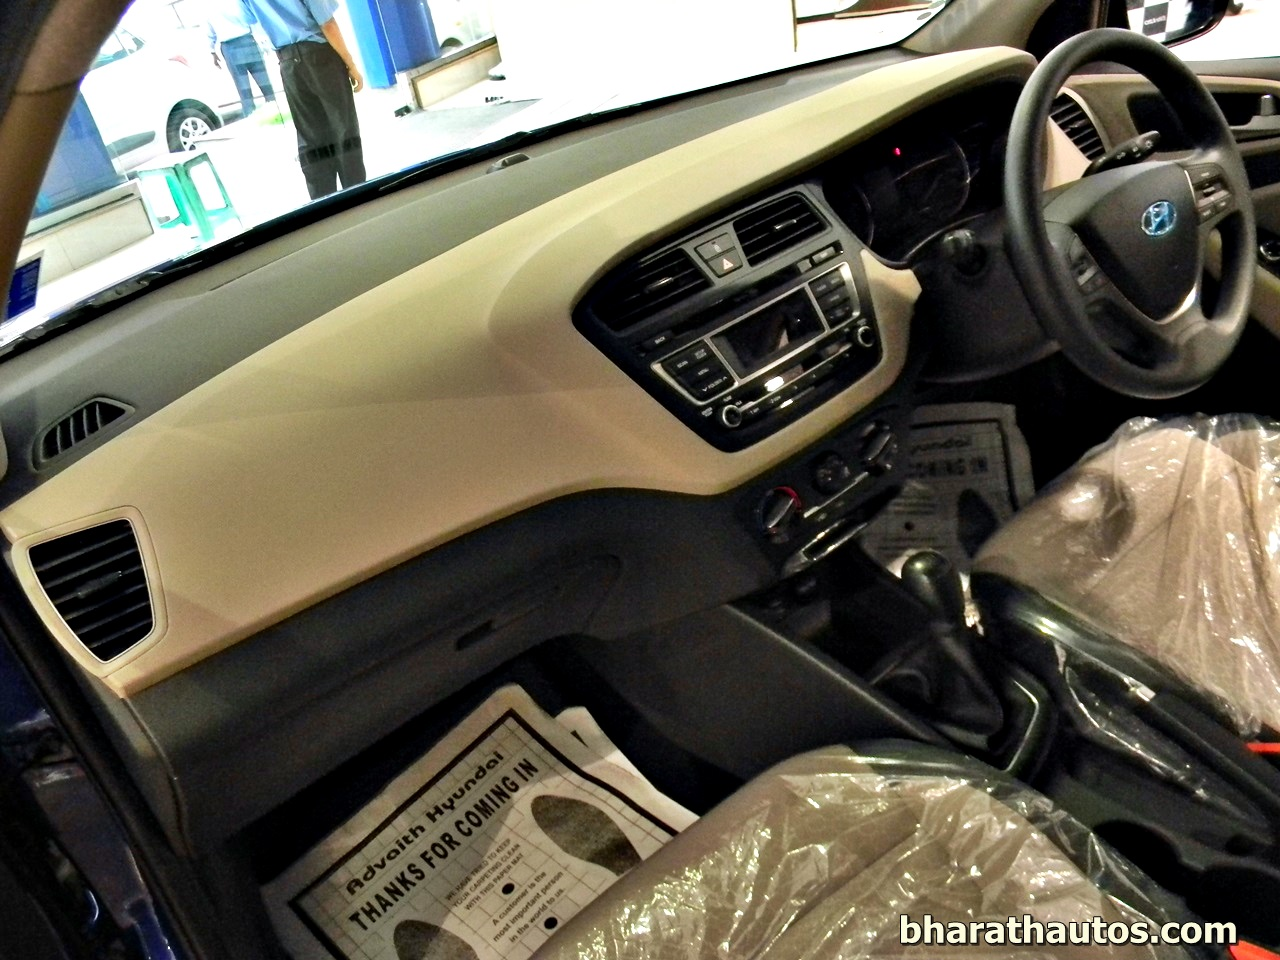 New 2014 Hyundai Elite I20 Inside View